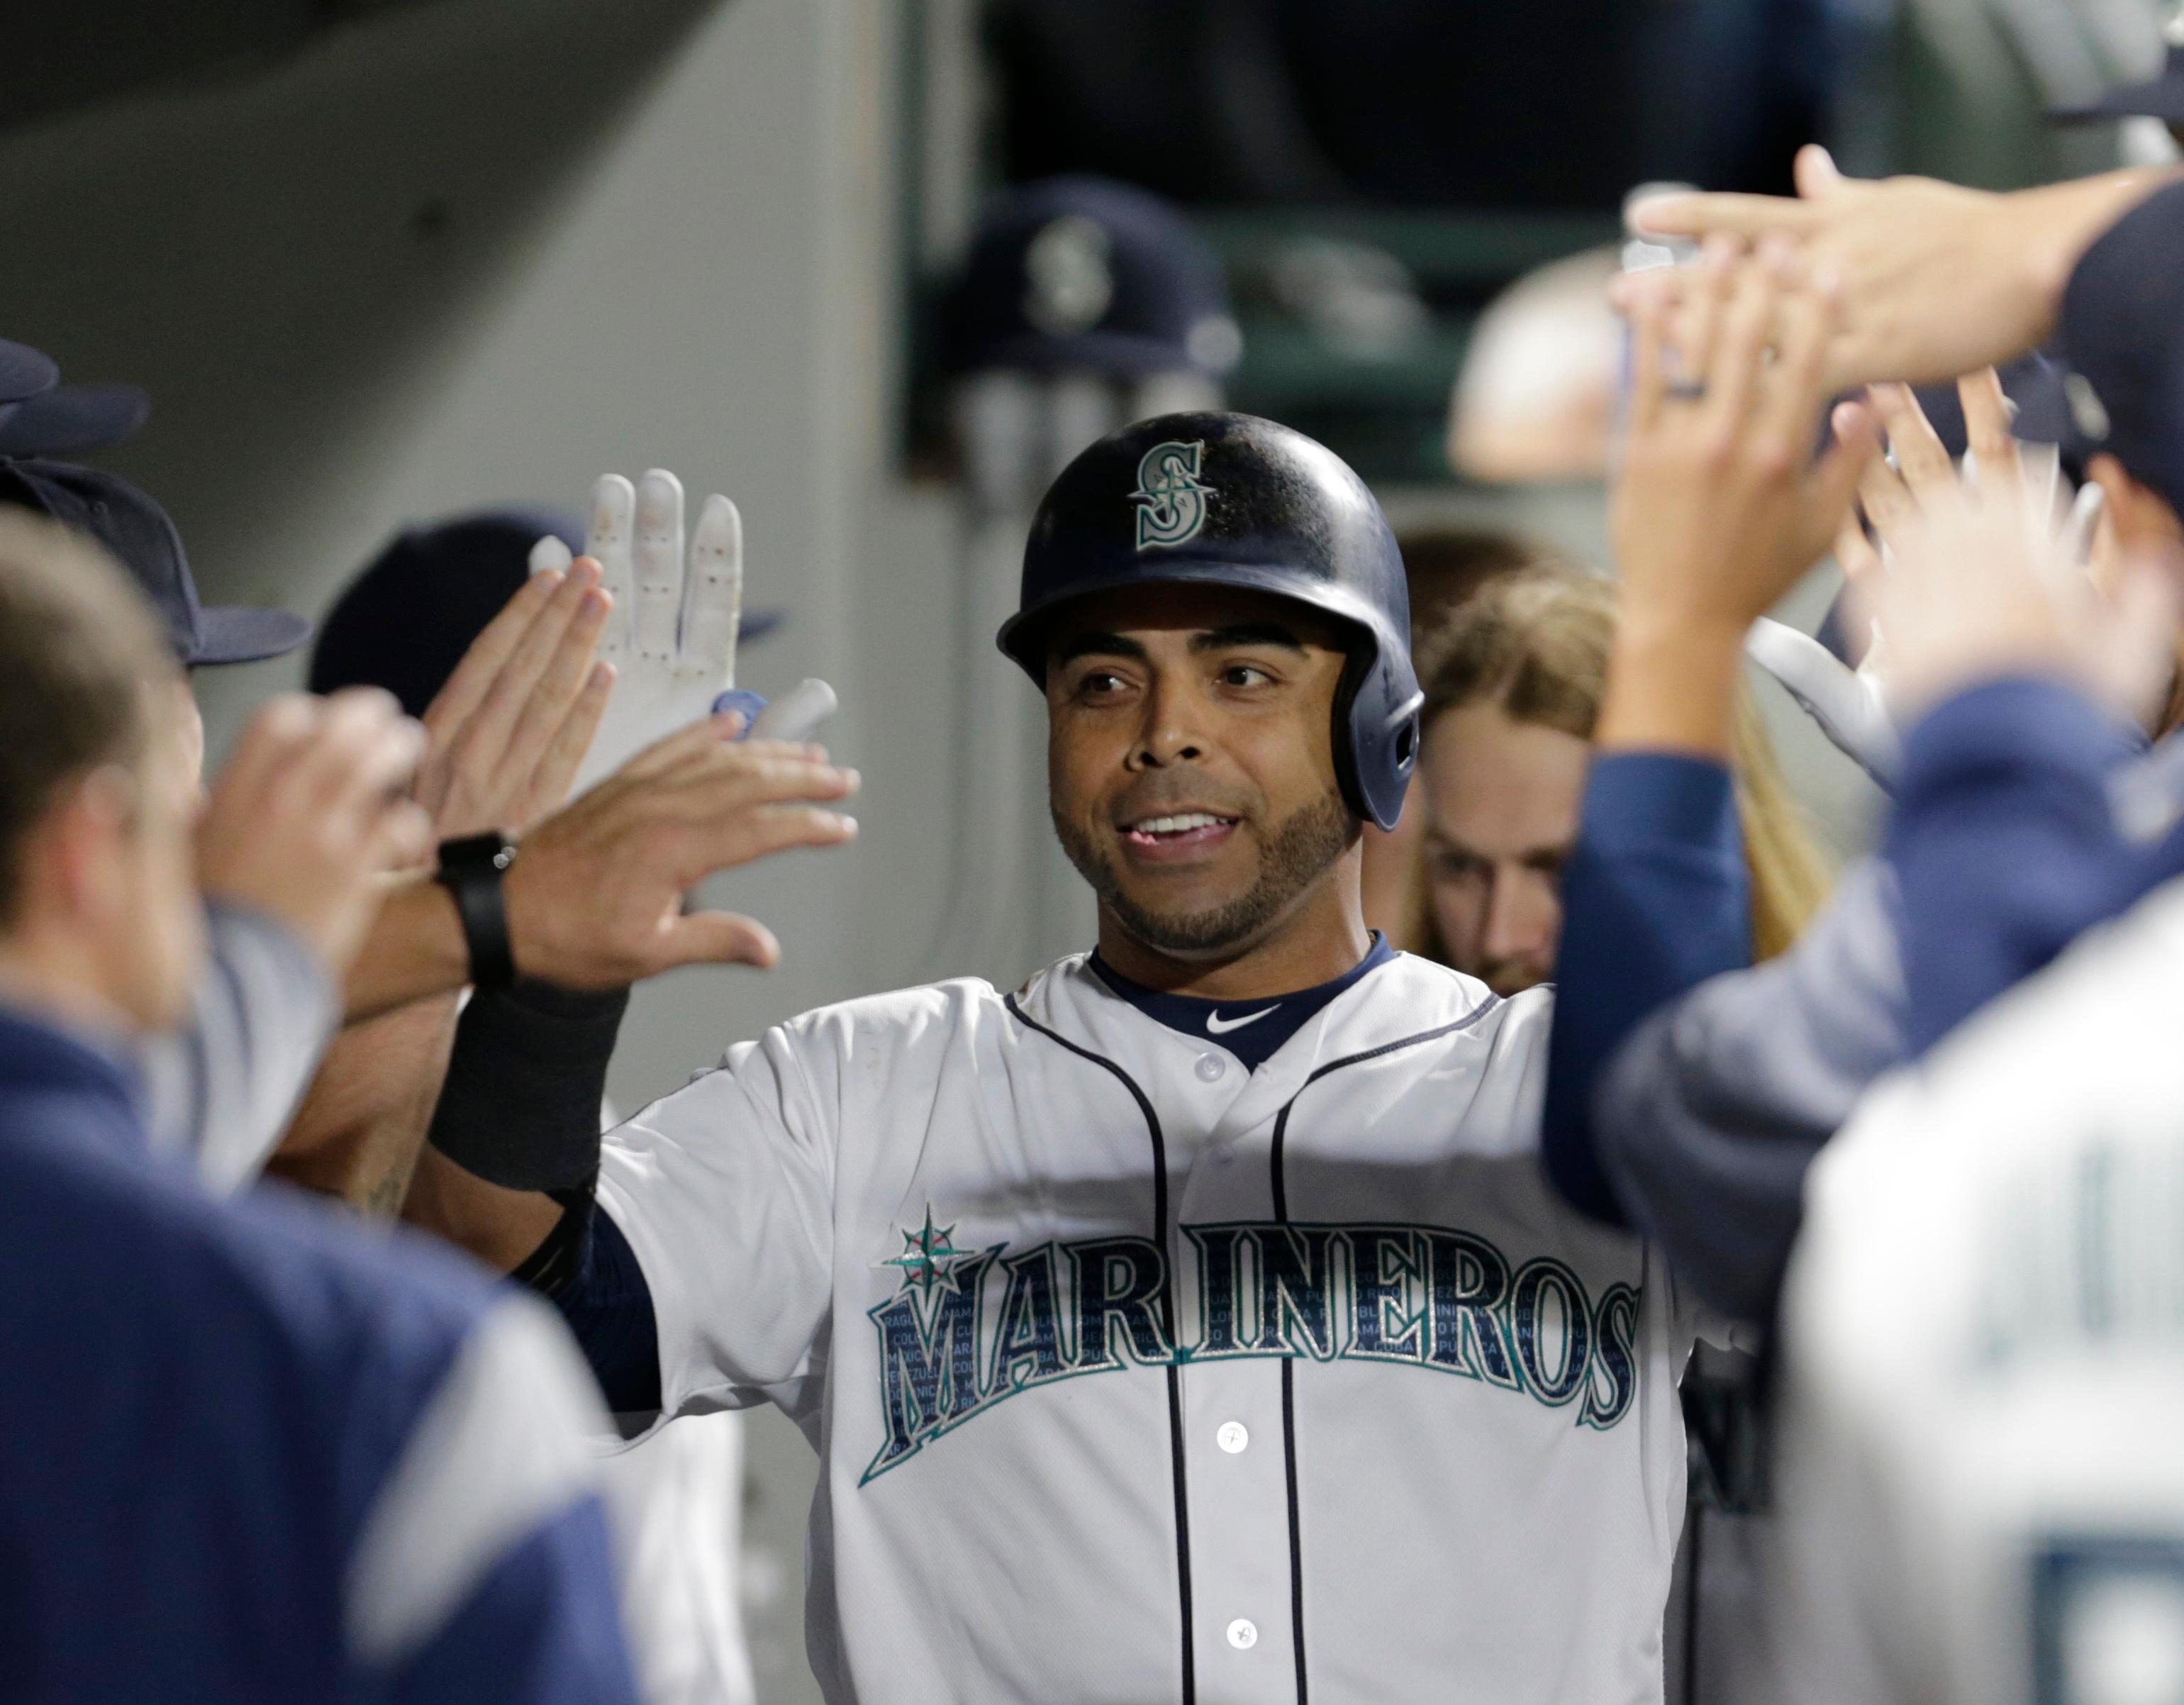 Seattle Mariners' Nelson Cruz is congratulated in the dugout after hitting a three-run home run off Los Angeles Angels' Jesse Chavez during the fourth inning of a baseball game Saturday, Sept. 9, 2017, in Seattle. (AP Photo/John Froschauer)